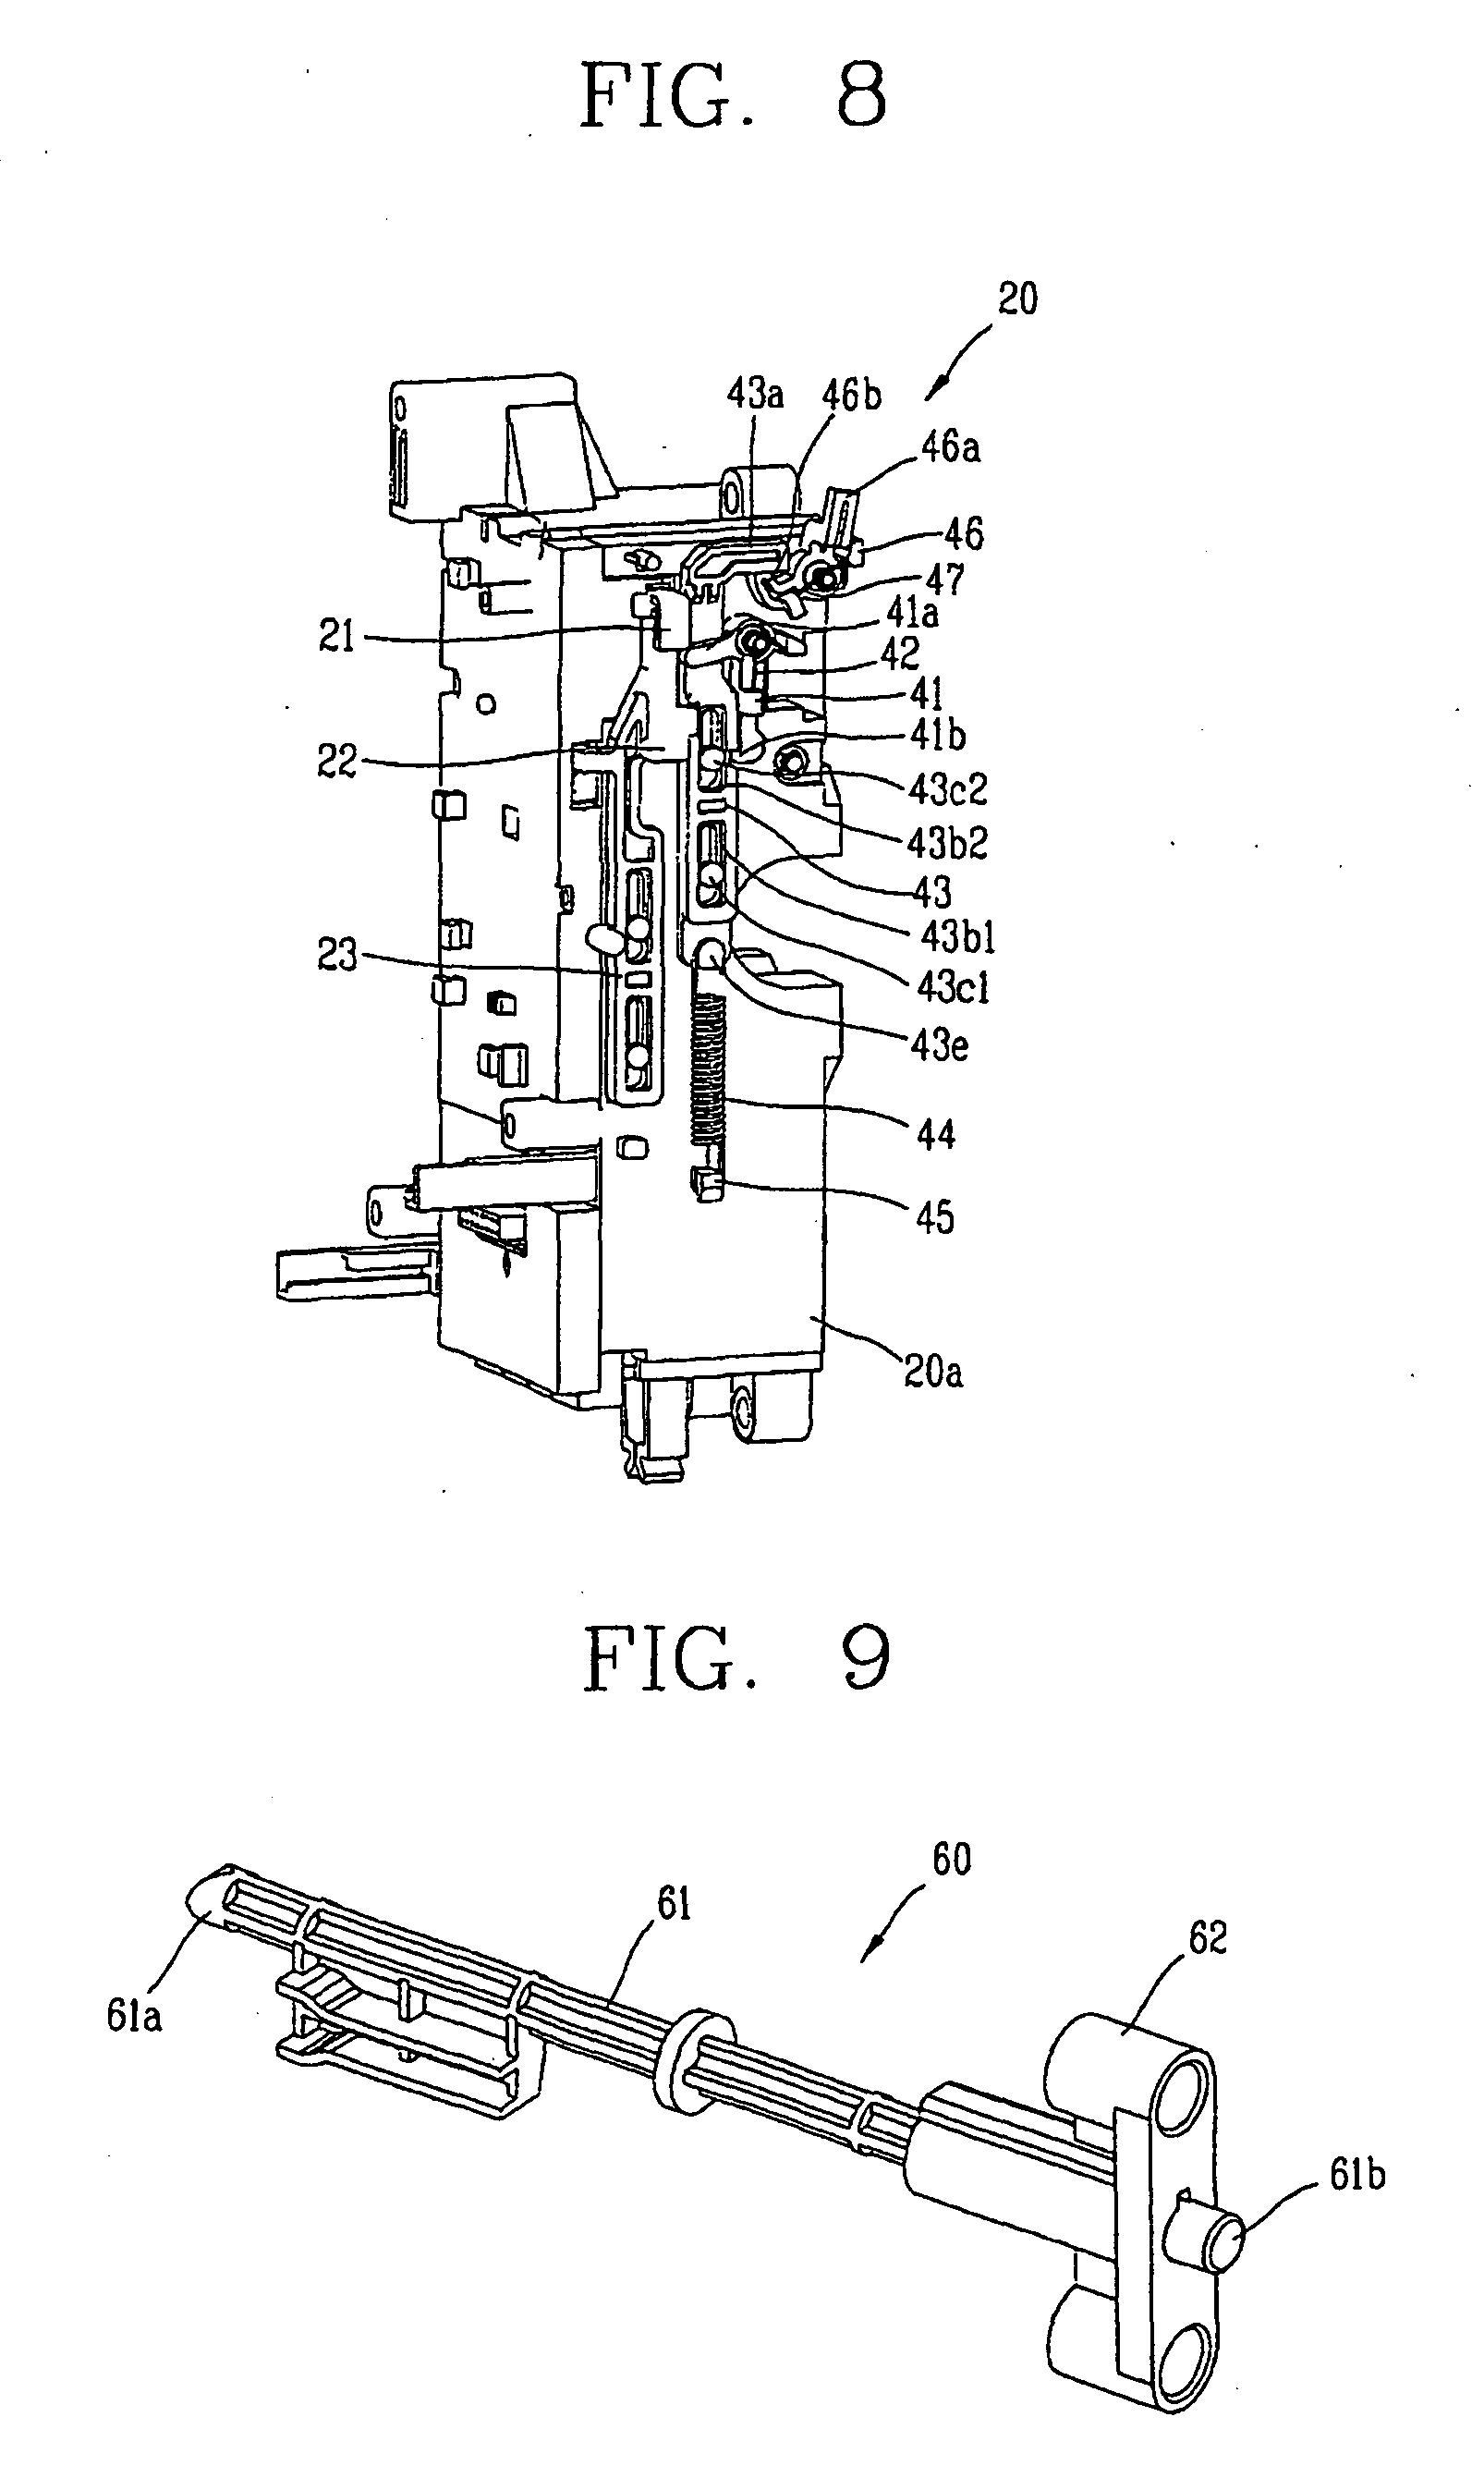 patent ep2015336b1 - air circuit breaker with mechanical trip indicating mechanism